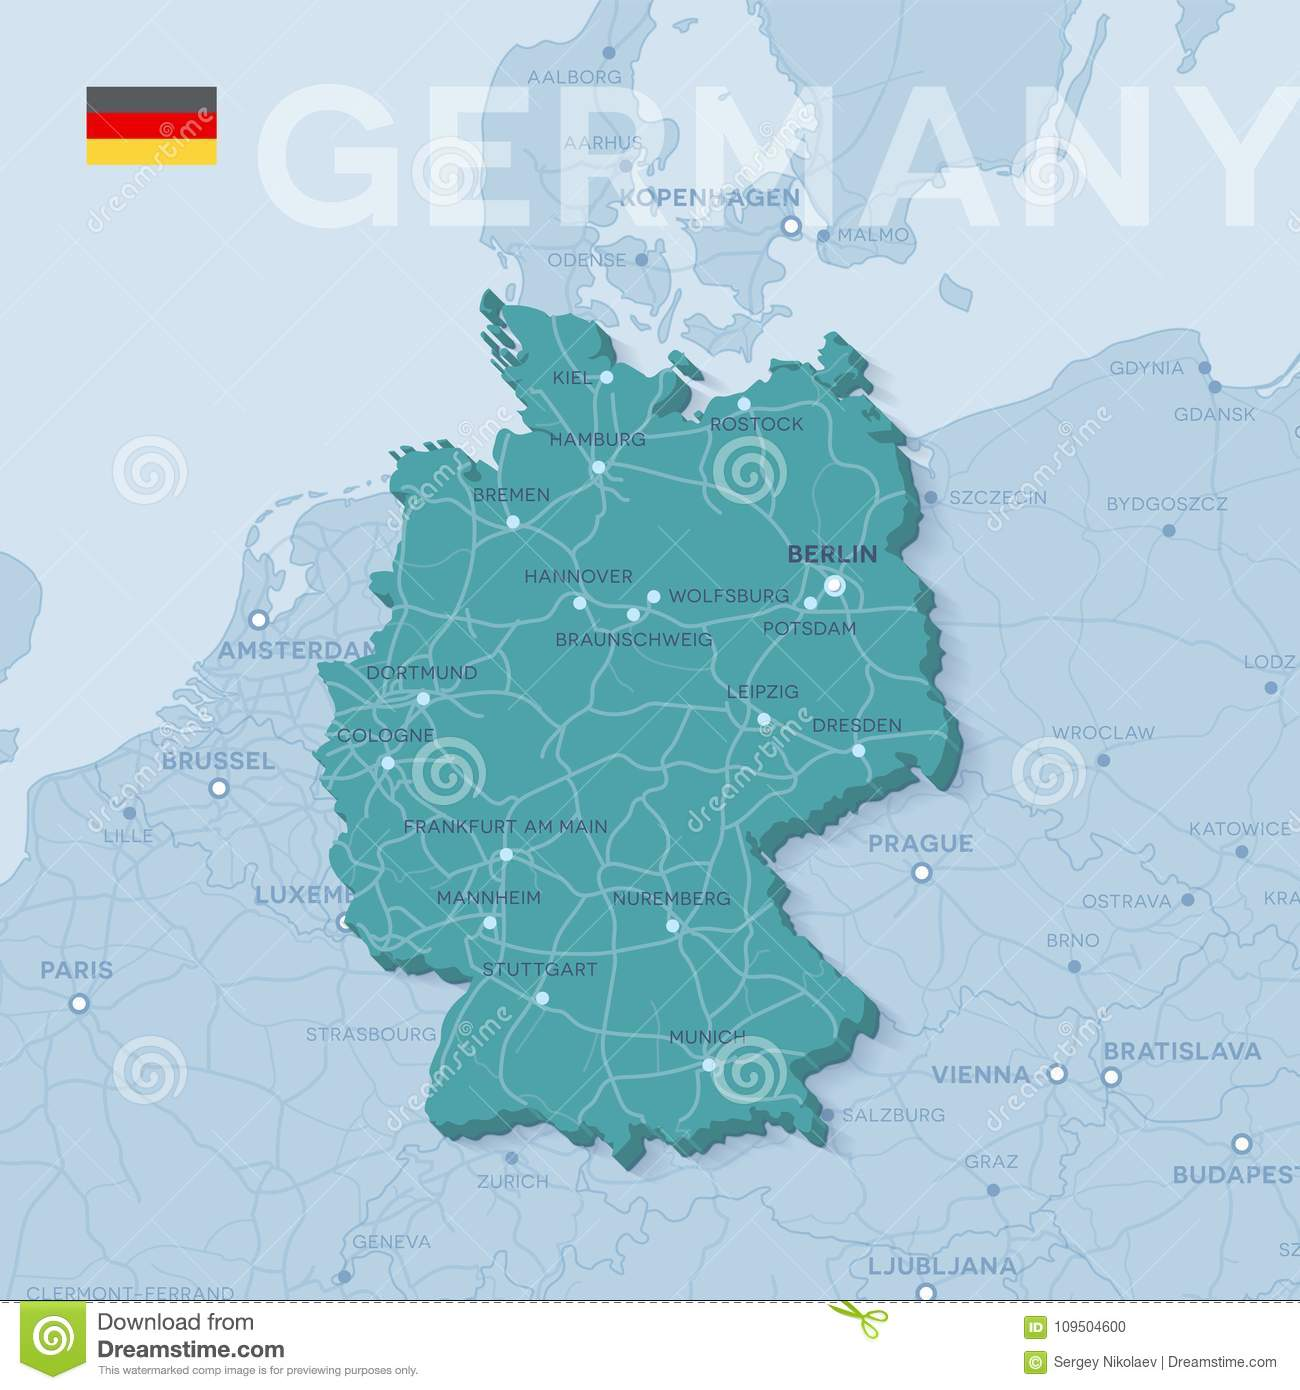 Map Of Cities In Germany.Map Of Cities And Roads In Germany Stock Vector Illustration Of